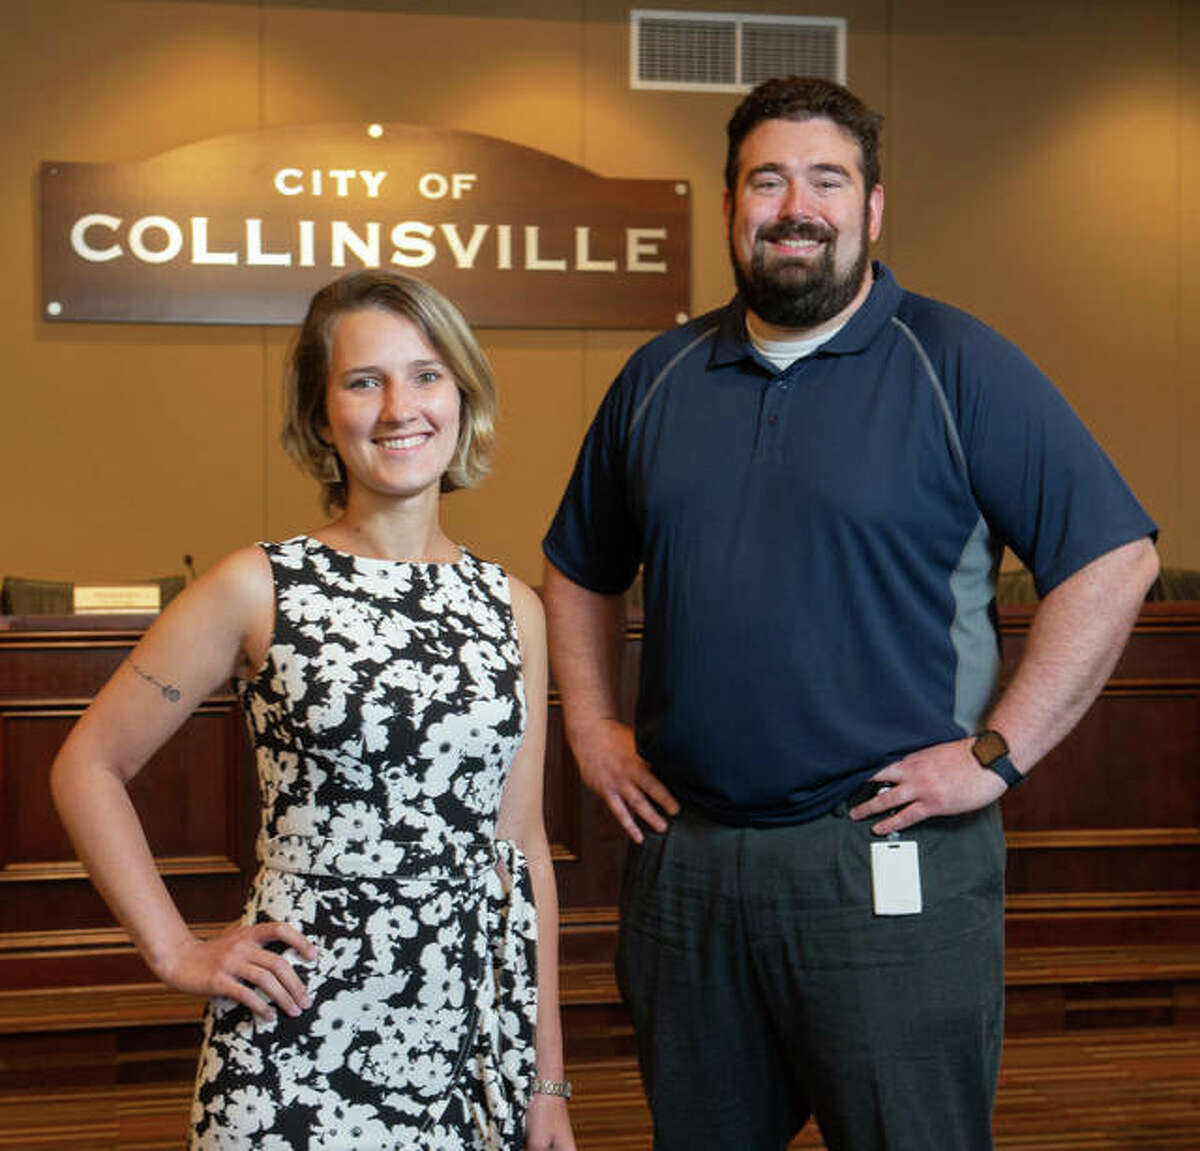 Waleska Valle (STEM Center GA and Sustainability Intern) is pictured with Derek Jackson (Deputy City Manager for the City of Collinsville.)